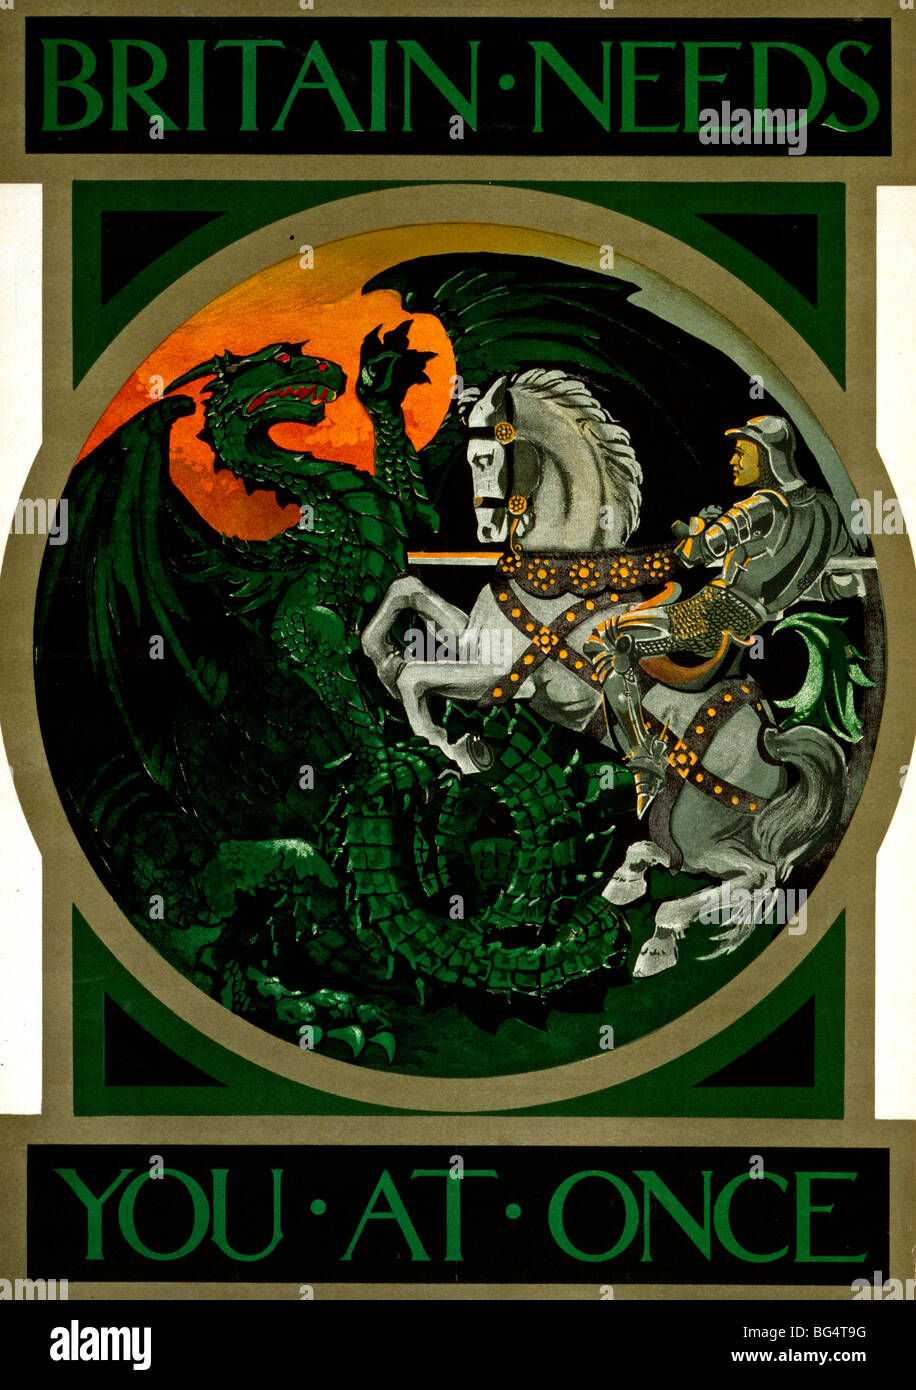 Britain needs you at once - World War I Poster showing St. George slaying the dragon - Stock Image